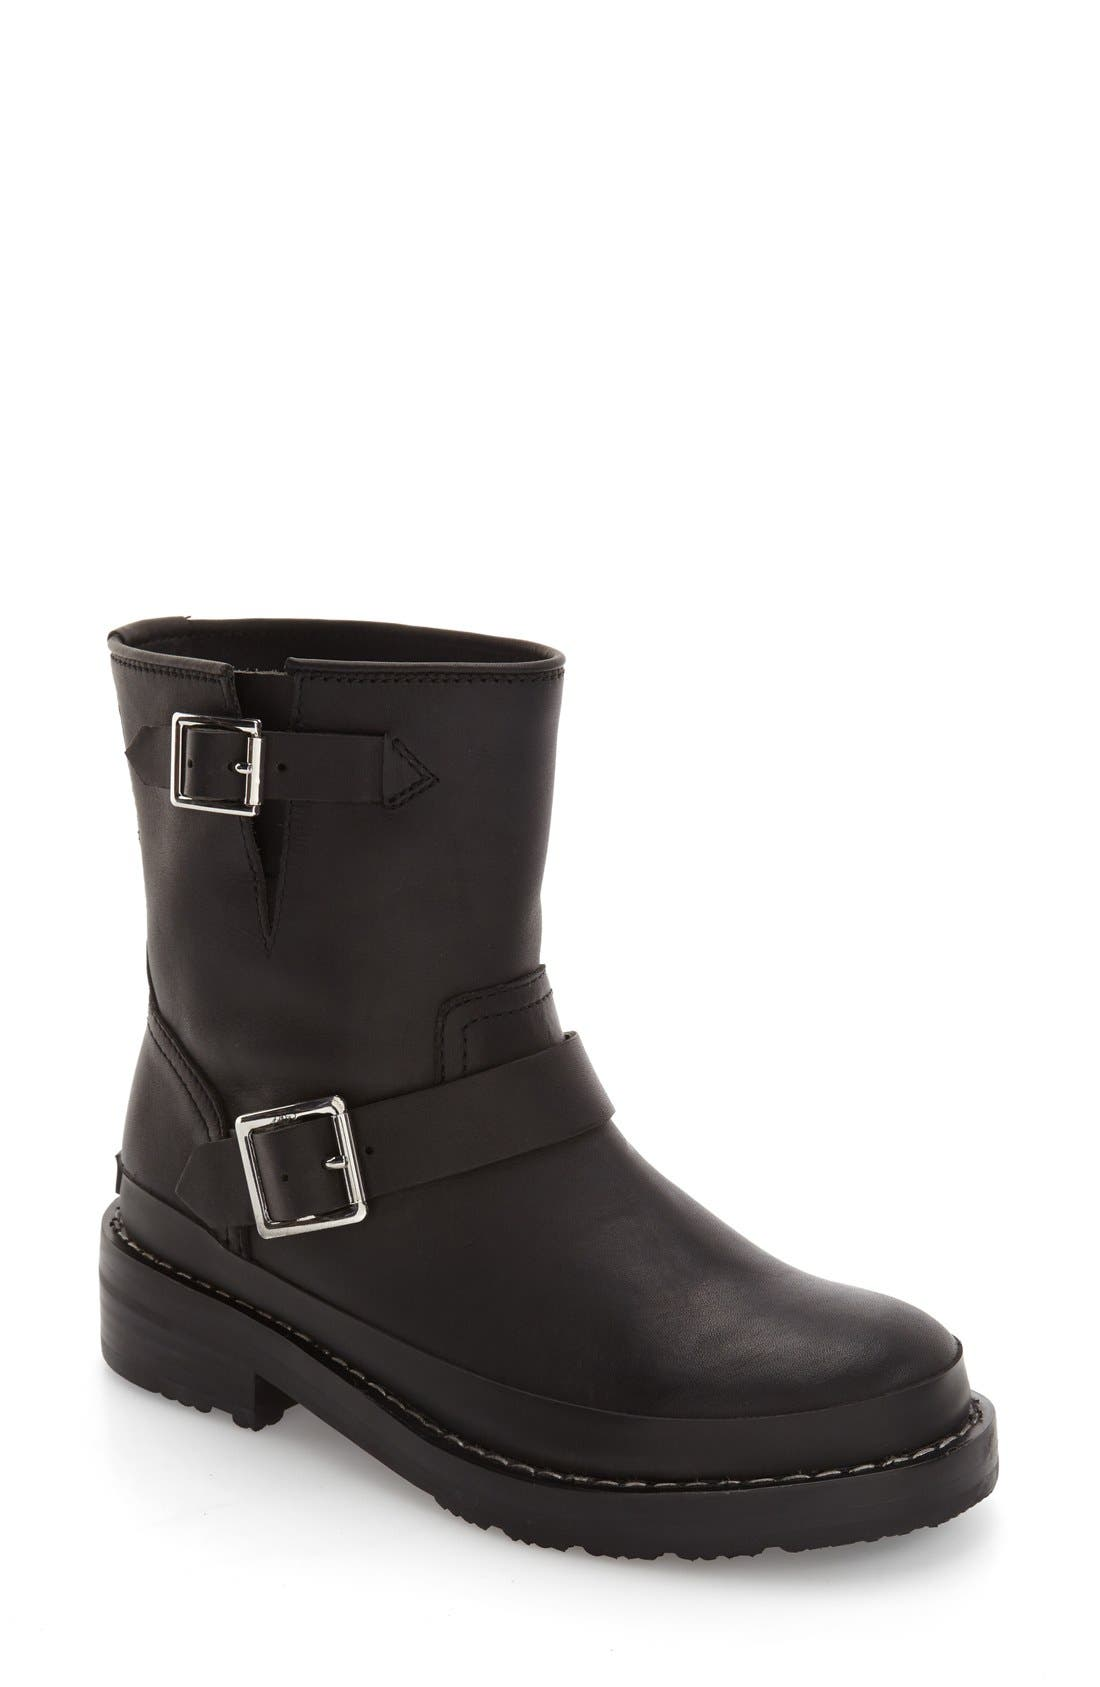 HUNTER Original Biker Water Resistant Boot